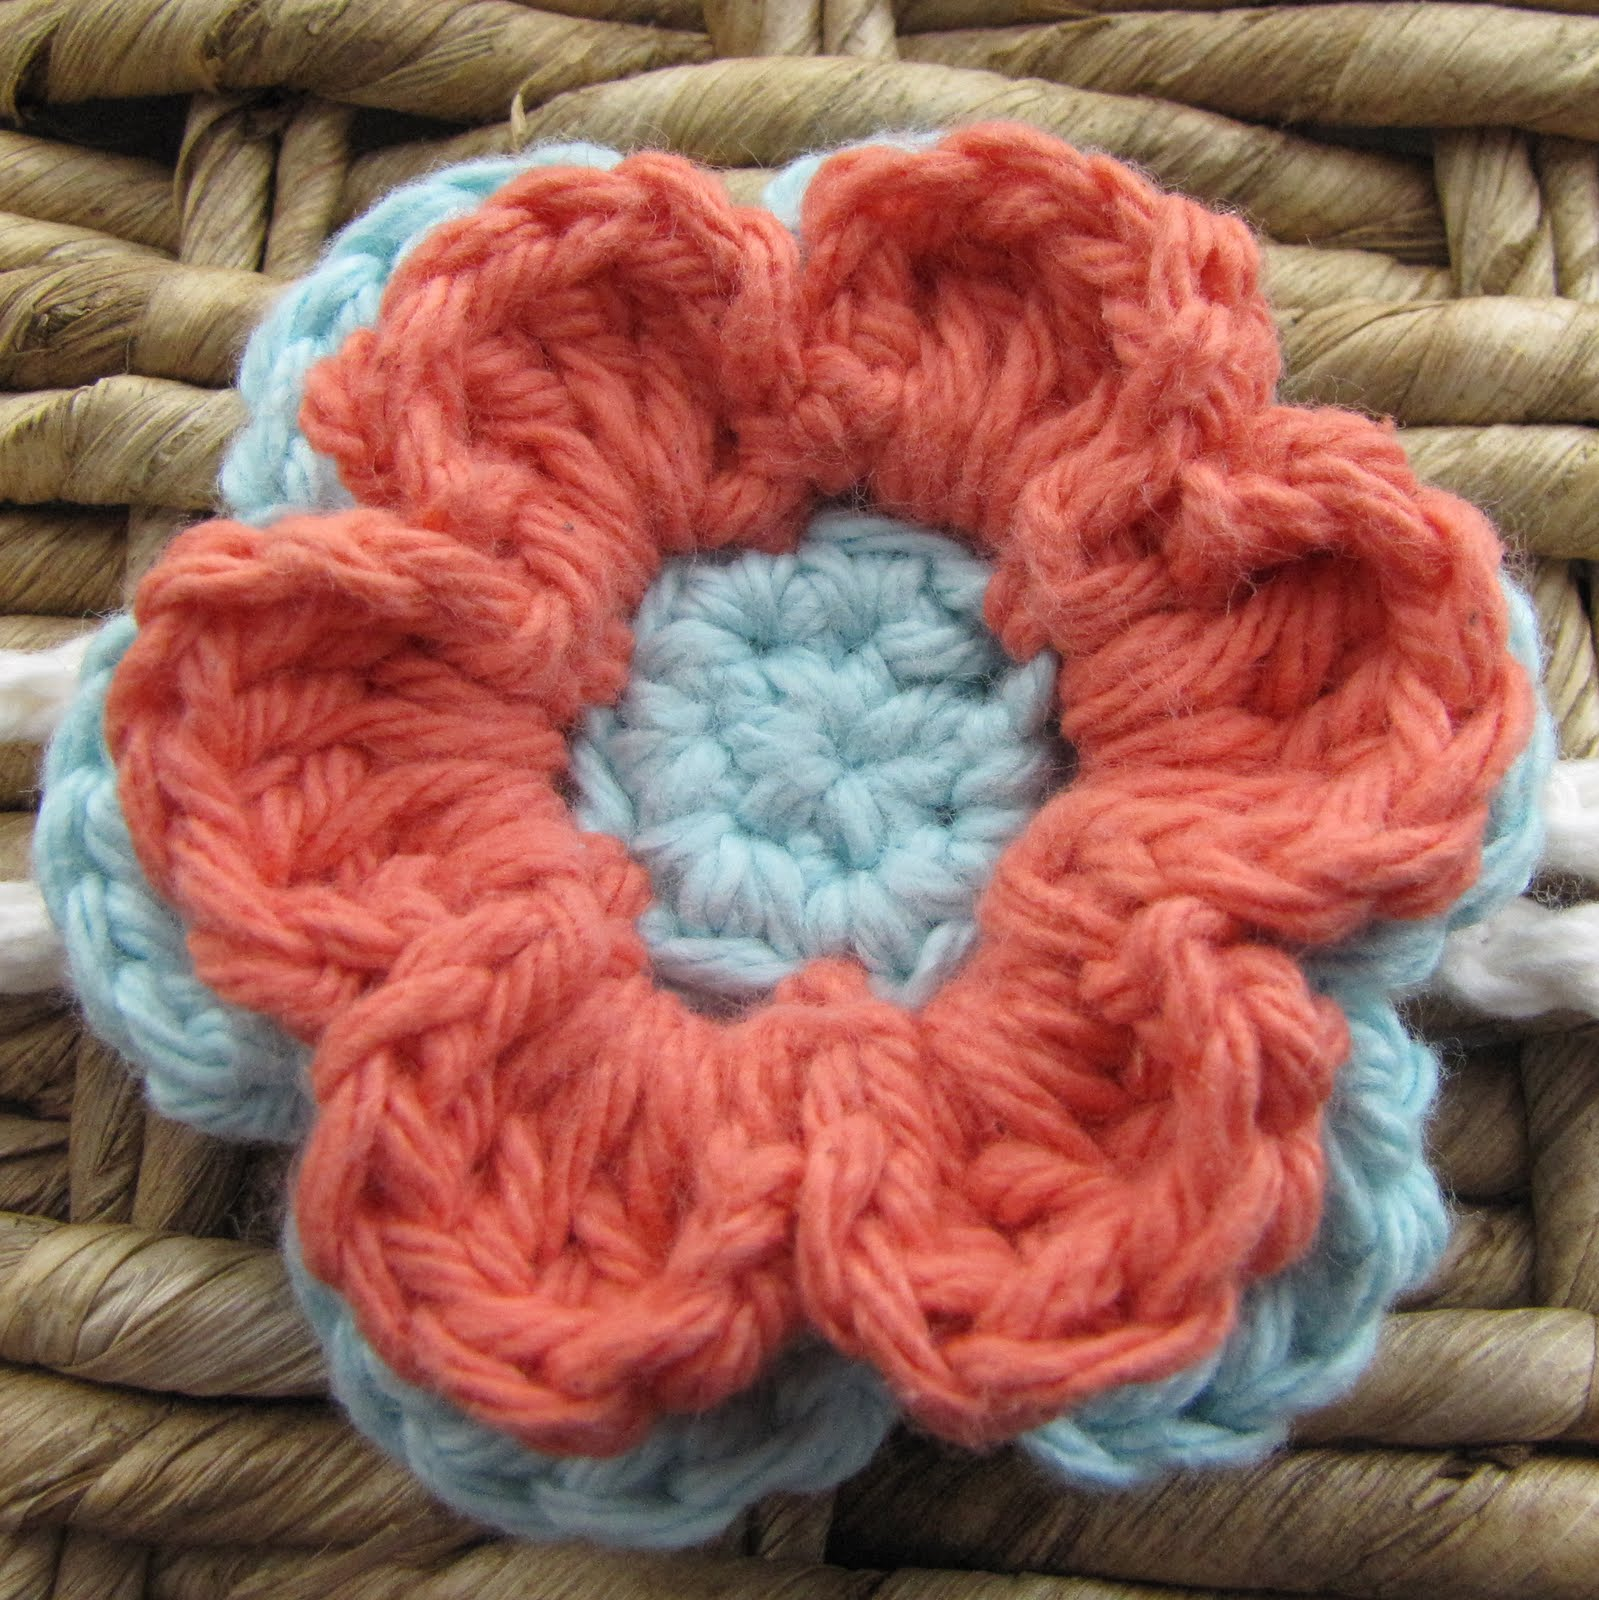 Stay-At-Home-Moms-of-Etsy: Tuesday Tutorial - Crochet ...